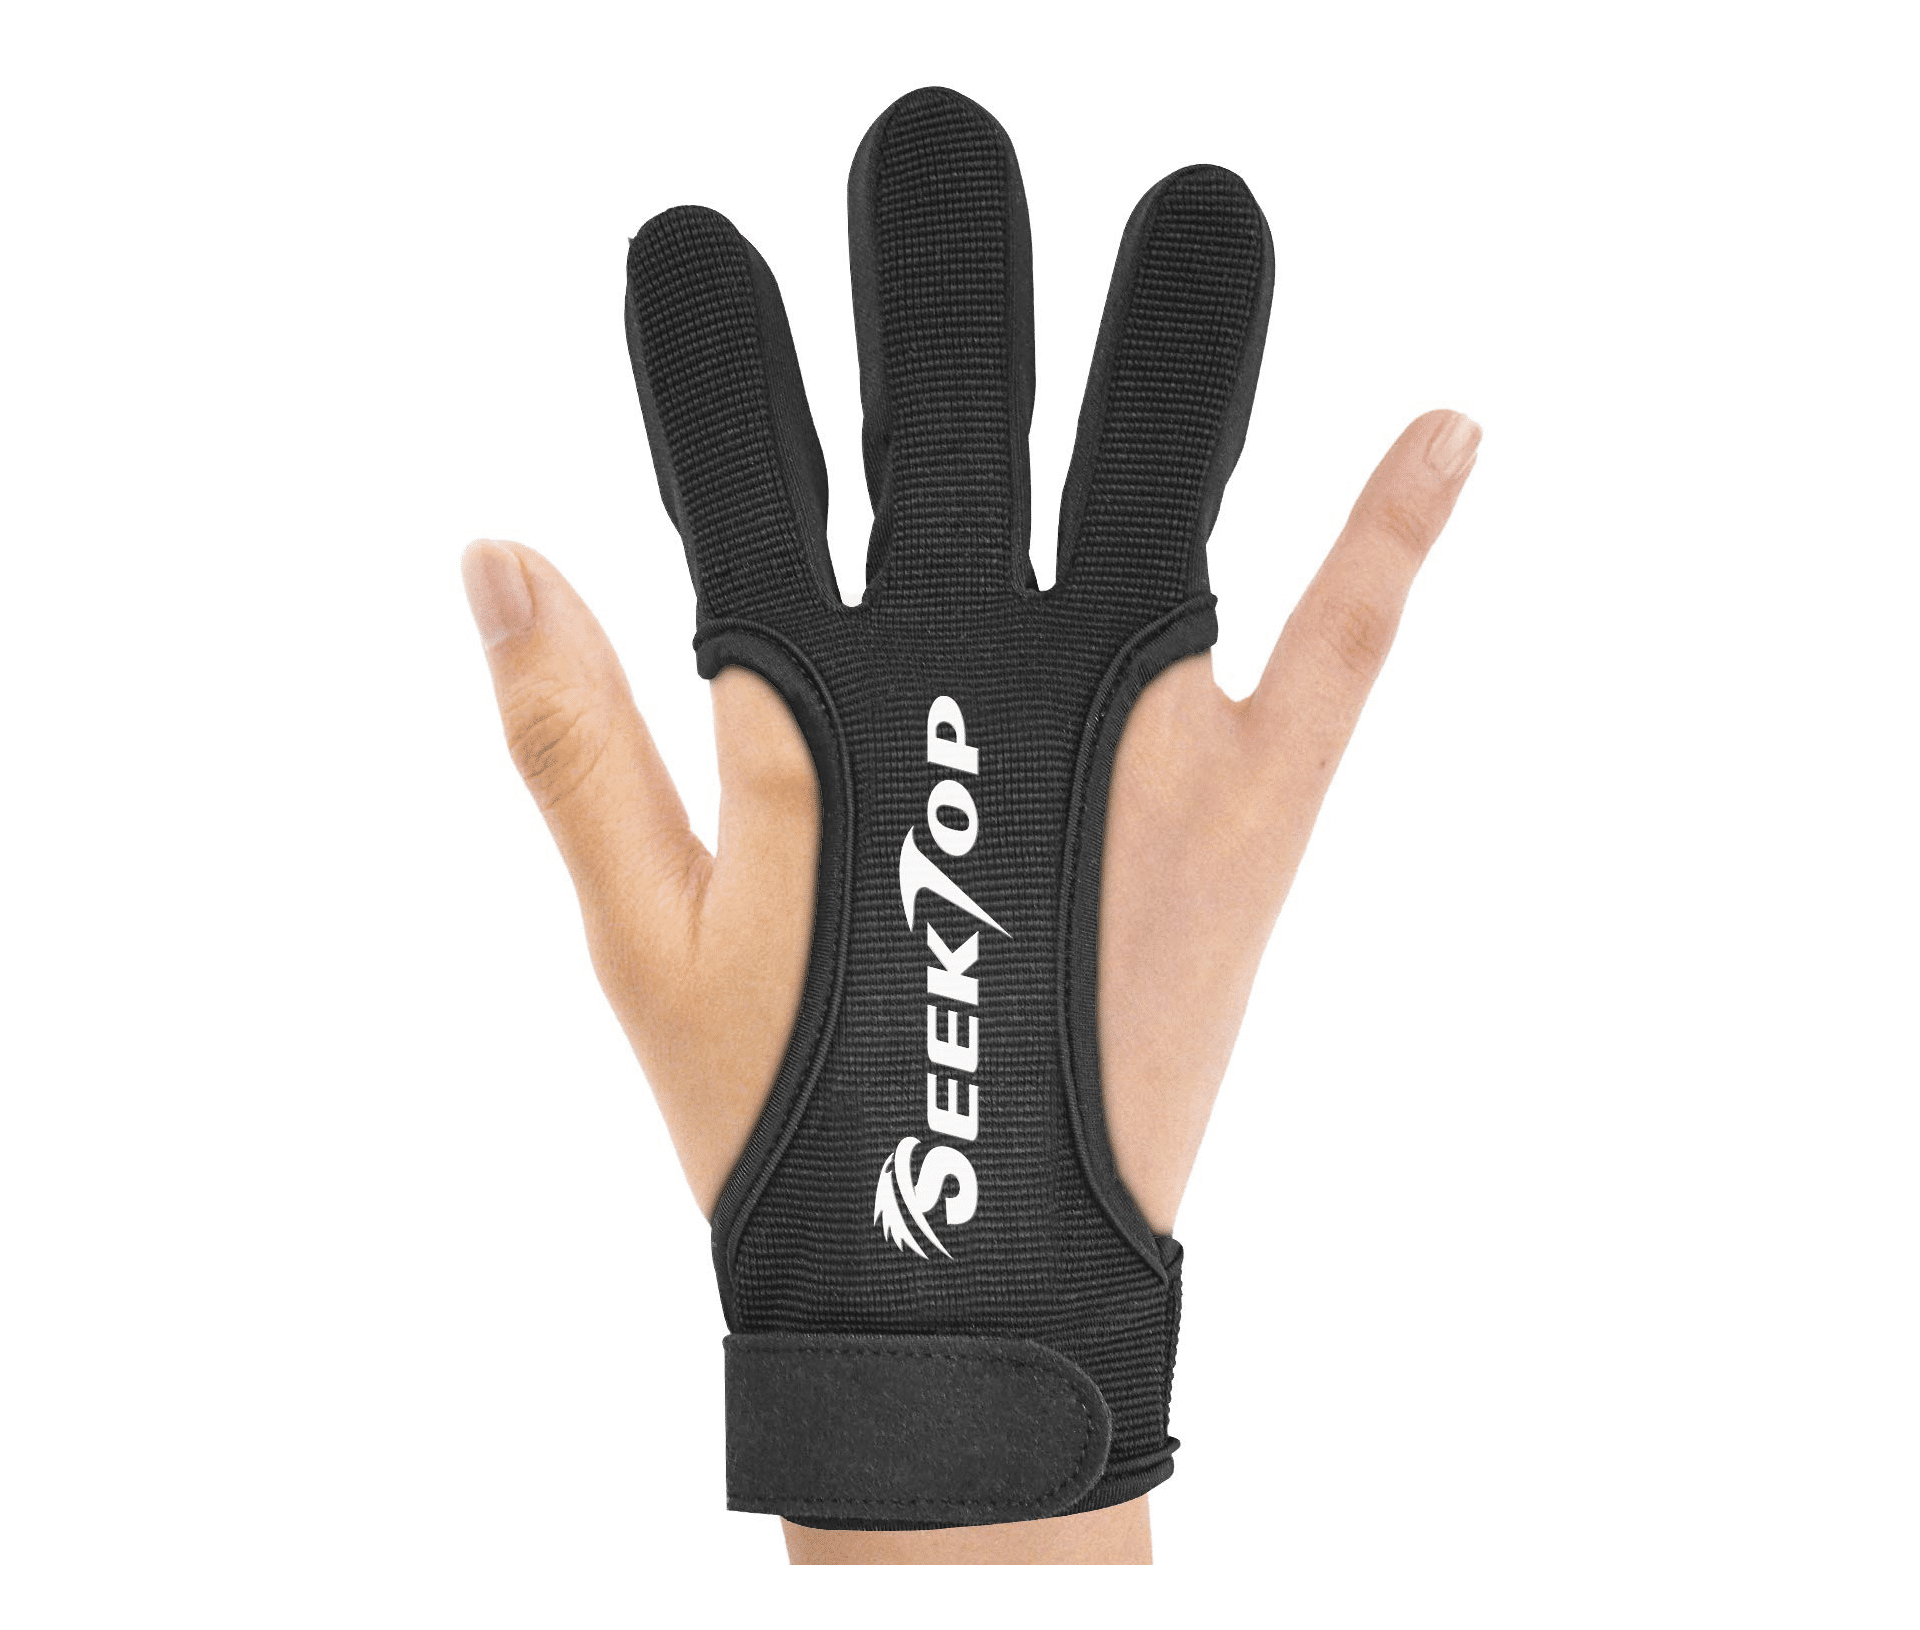 JKER TECH Archery Glove